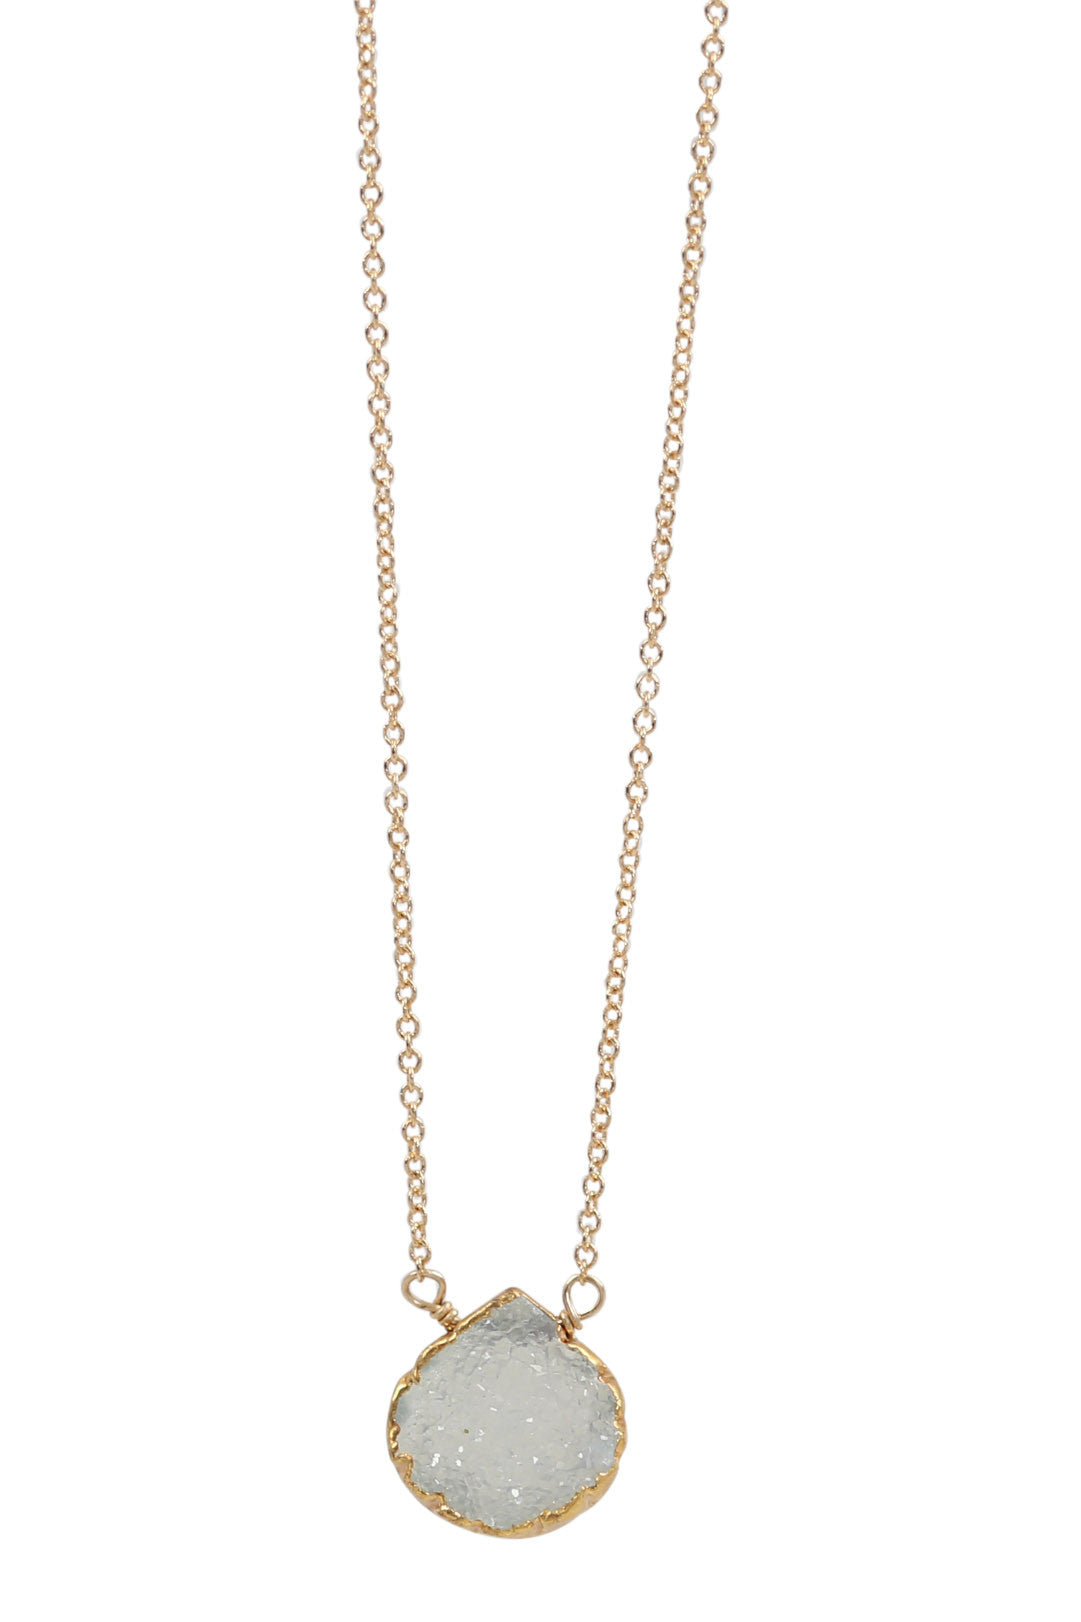 druzy necklace - light aqua